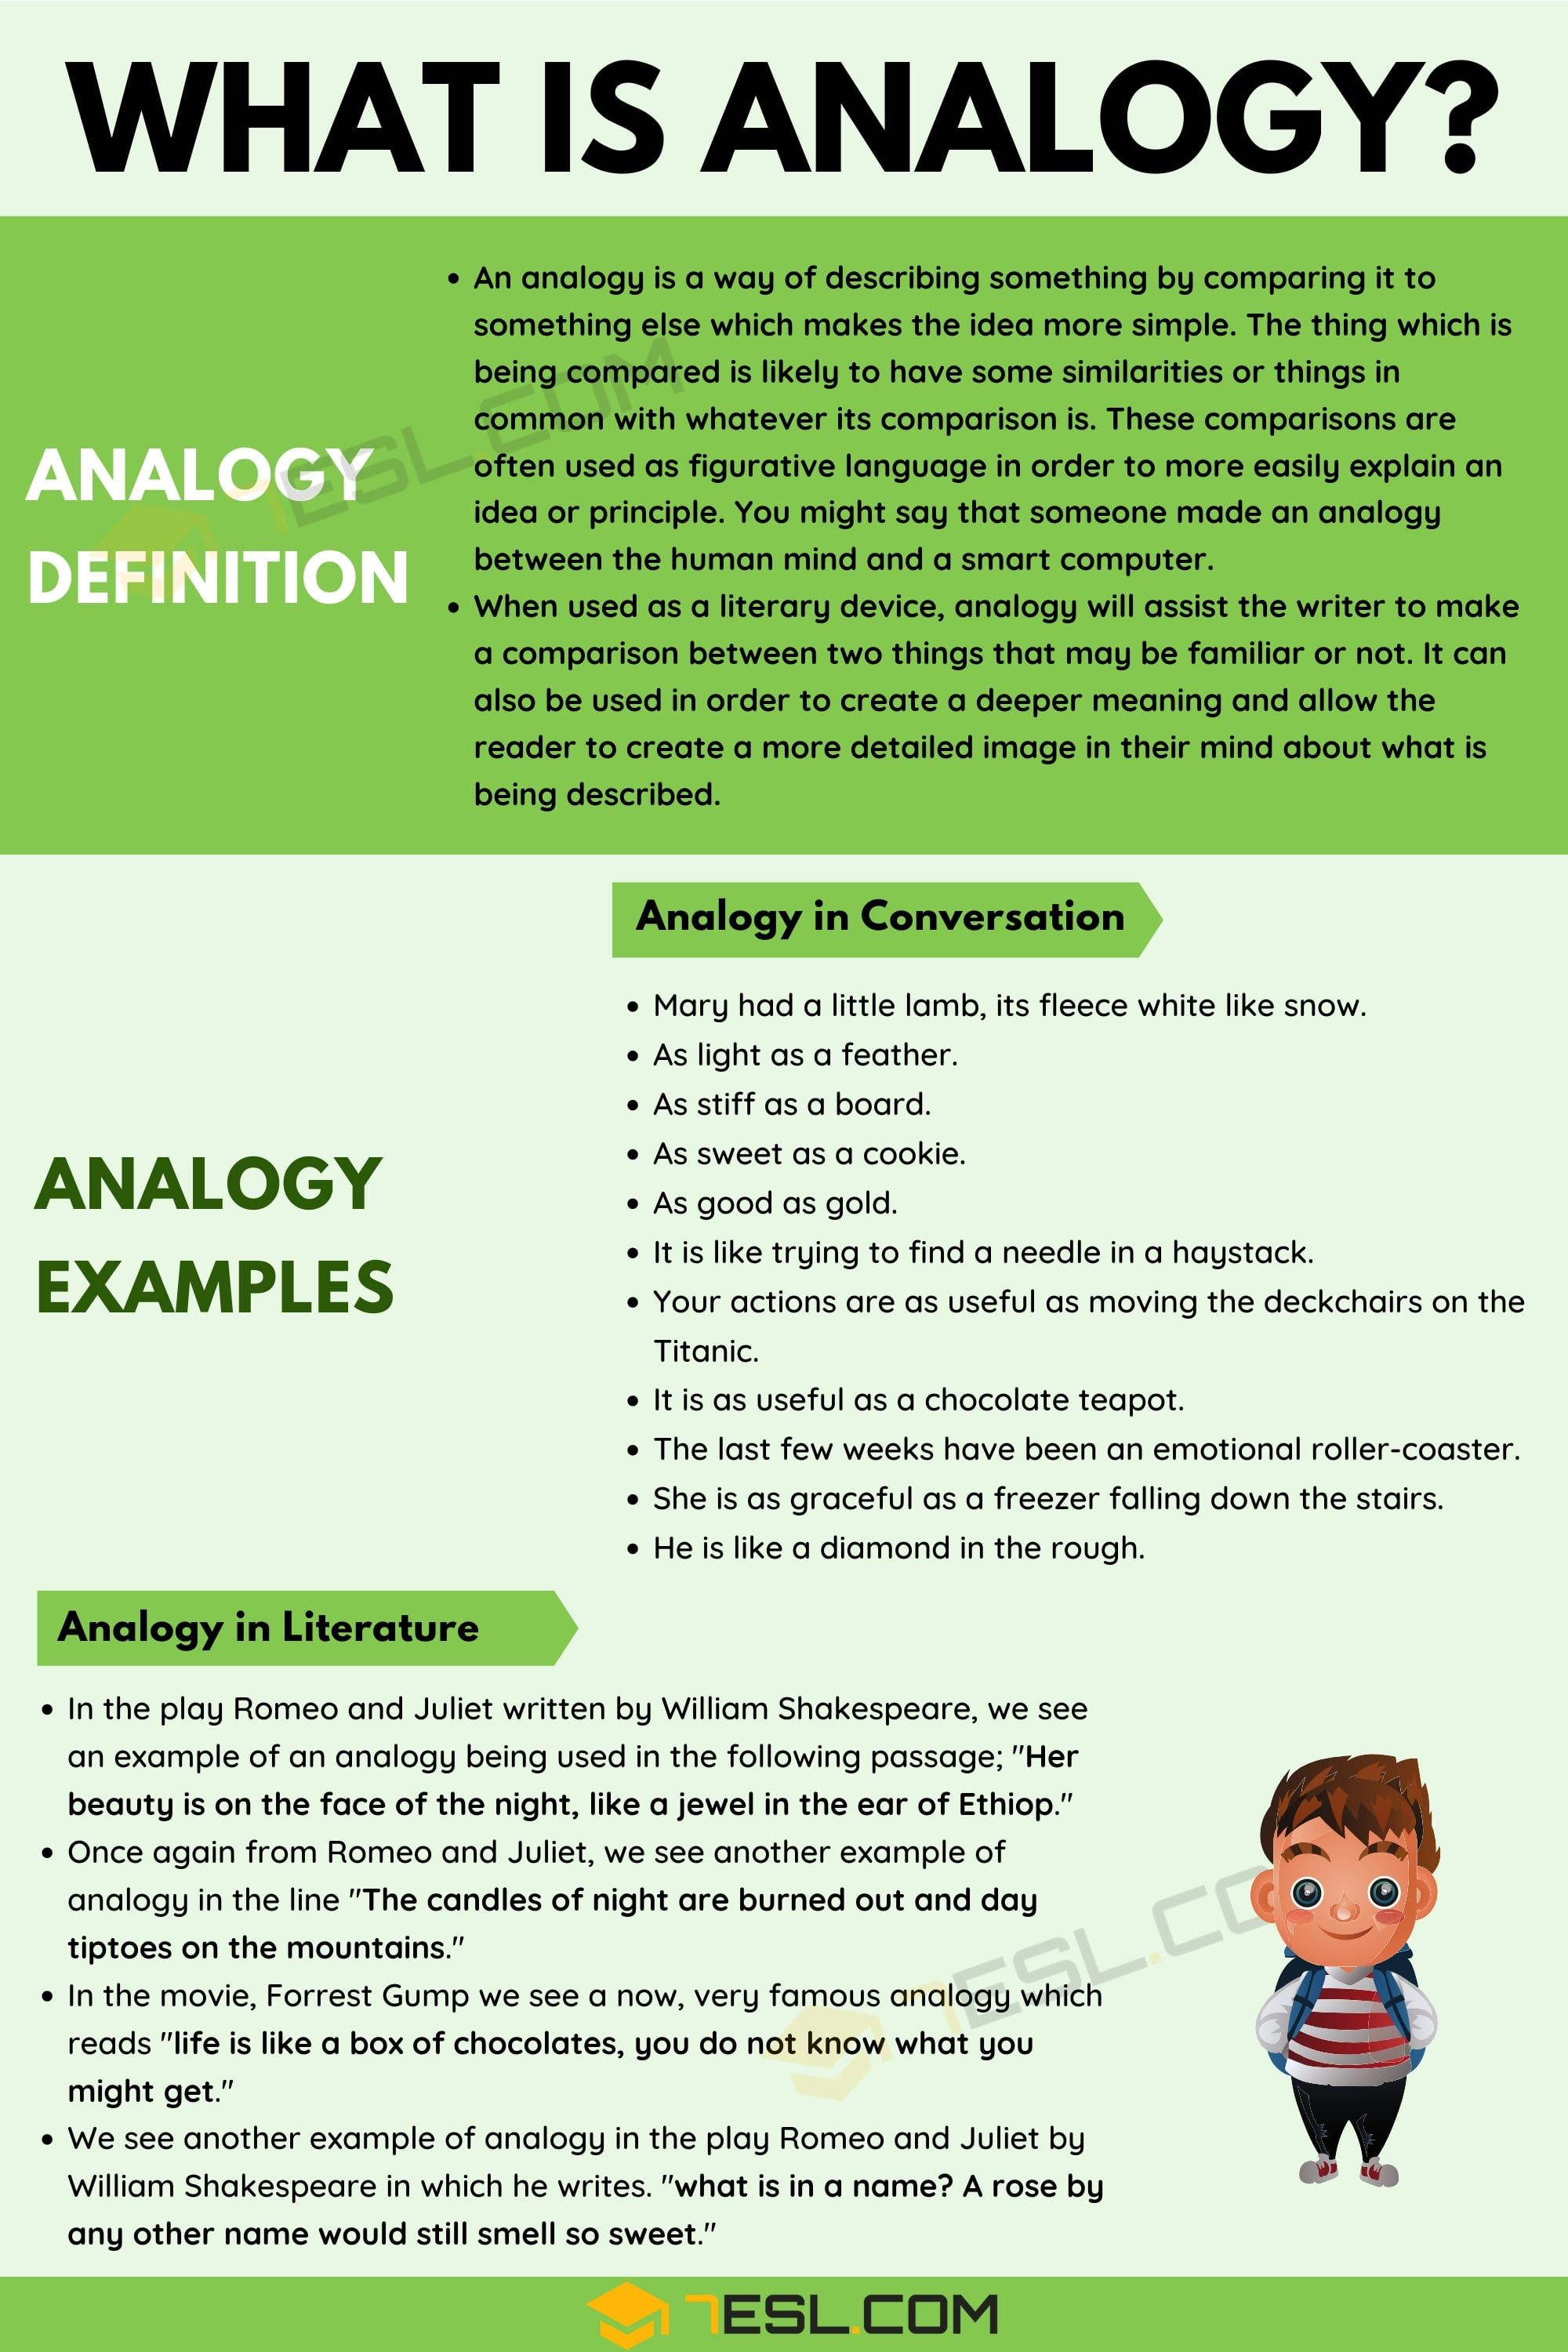 Analogy Definition And Examples Of Analogy In Conversation Literature 7esl English Writing Skills Learn English Vocabulary English Vocabulary Words